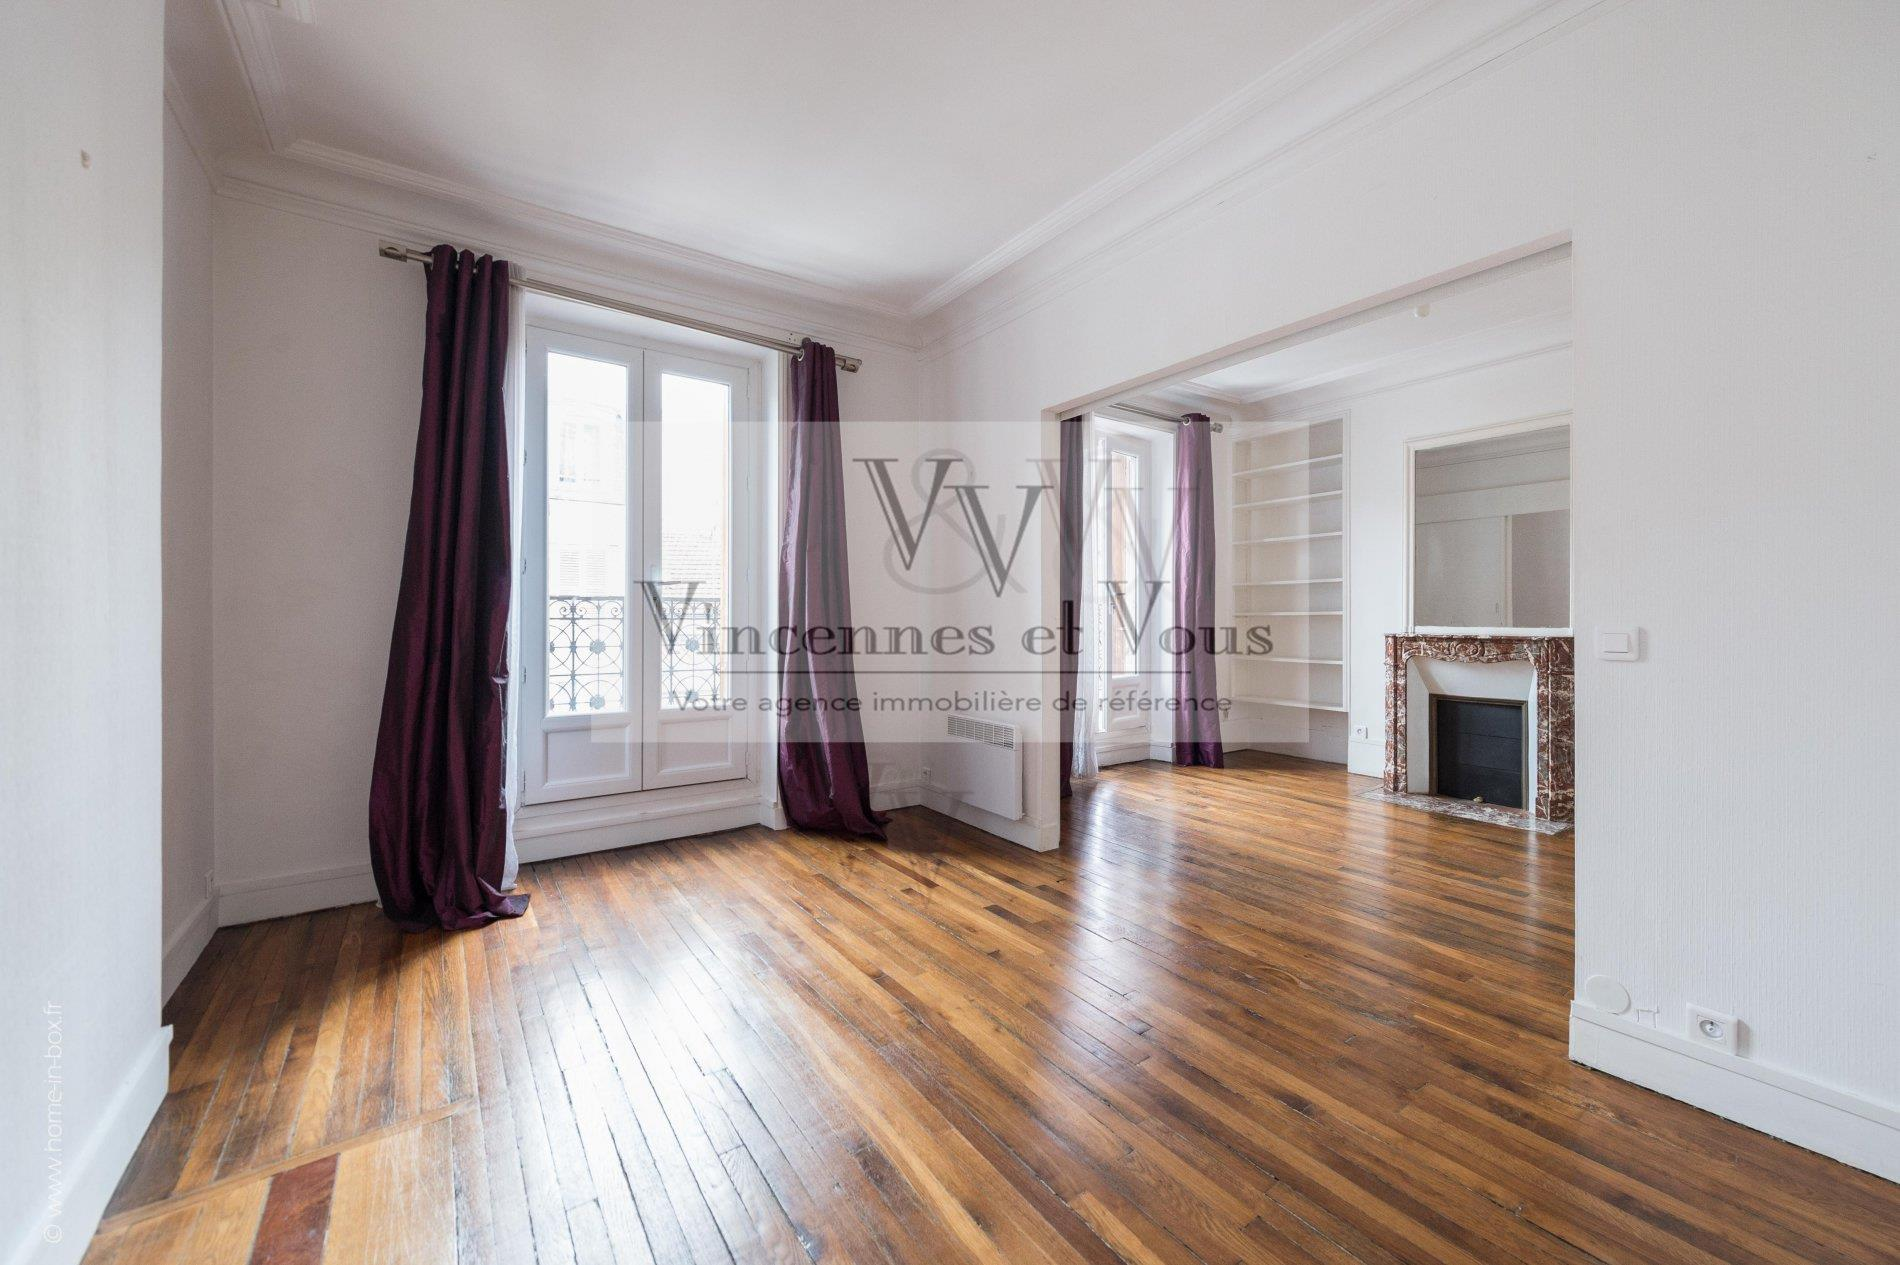 Photo 1 Vente Appartement  vincennes